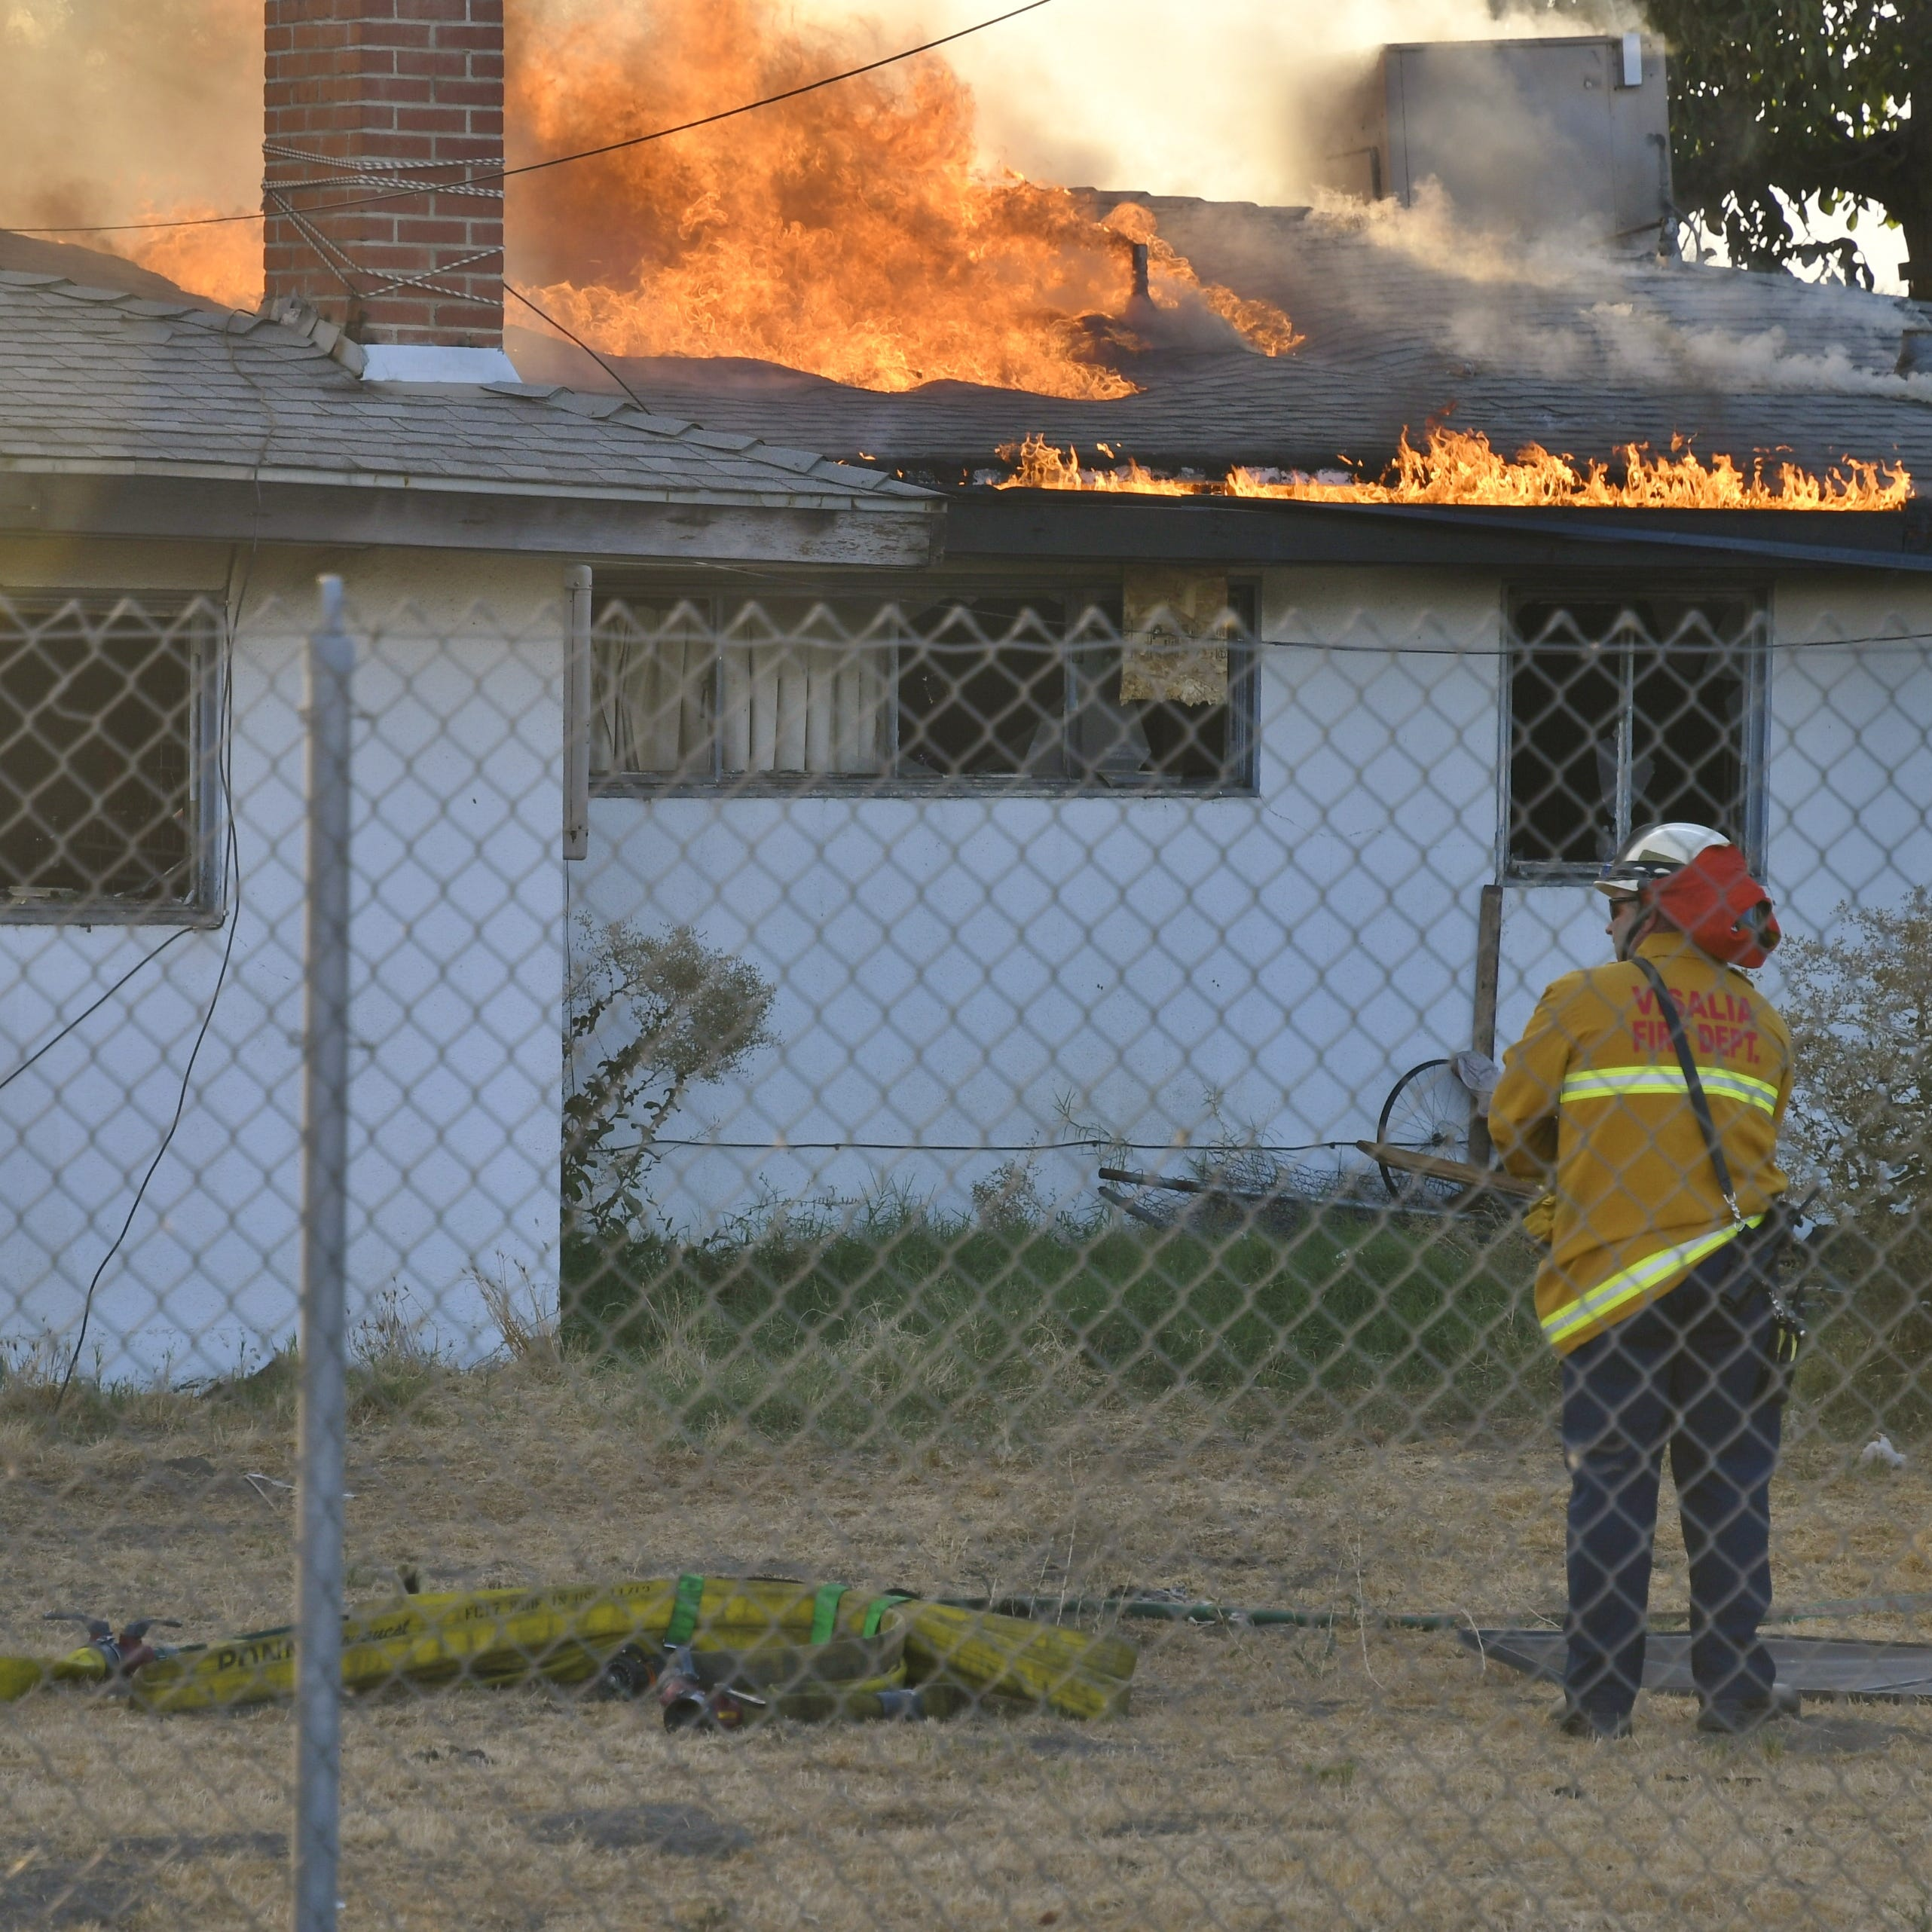 'Trouble' home goes up in flames, Visalia firefighters let it burn